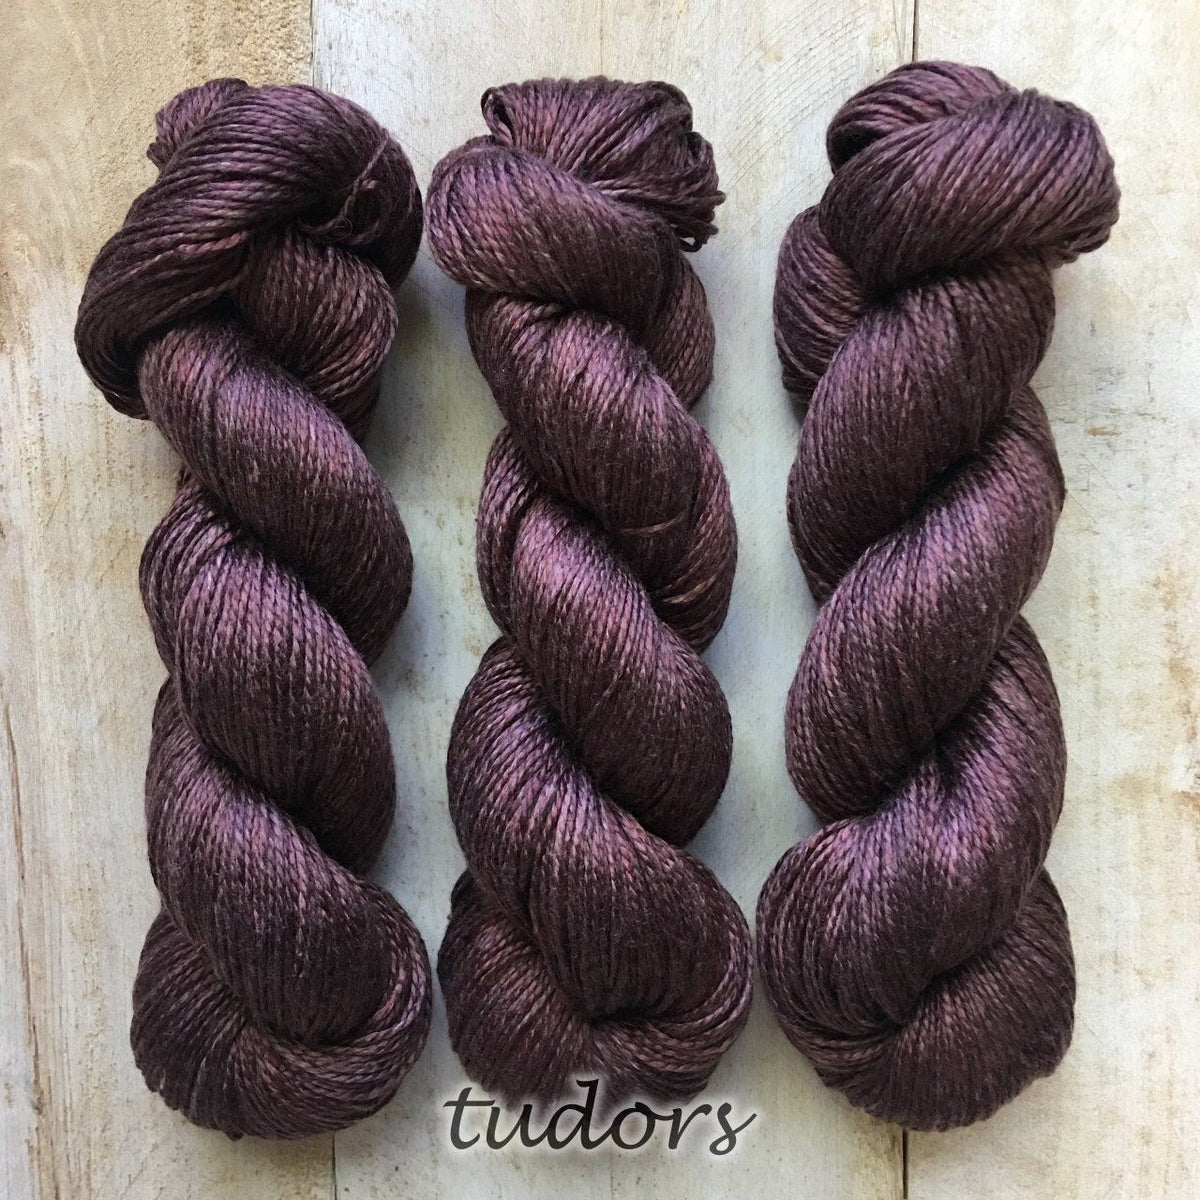 TUDORS by Louise Robert Design | ALGUA MARINA hand-dyed semi-solid yarn